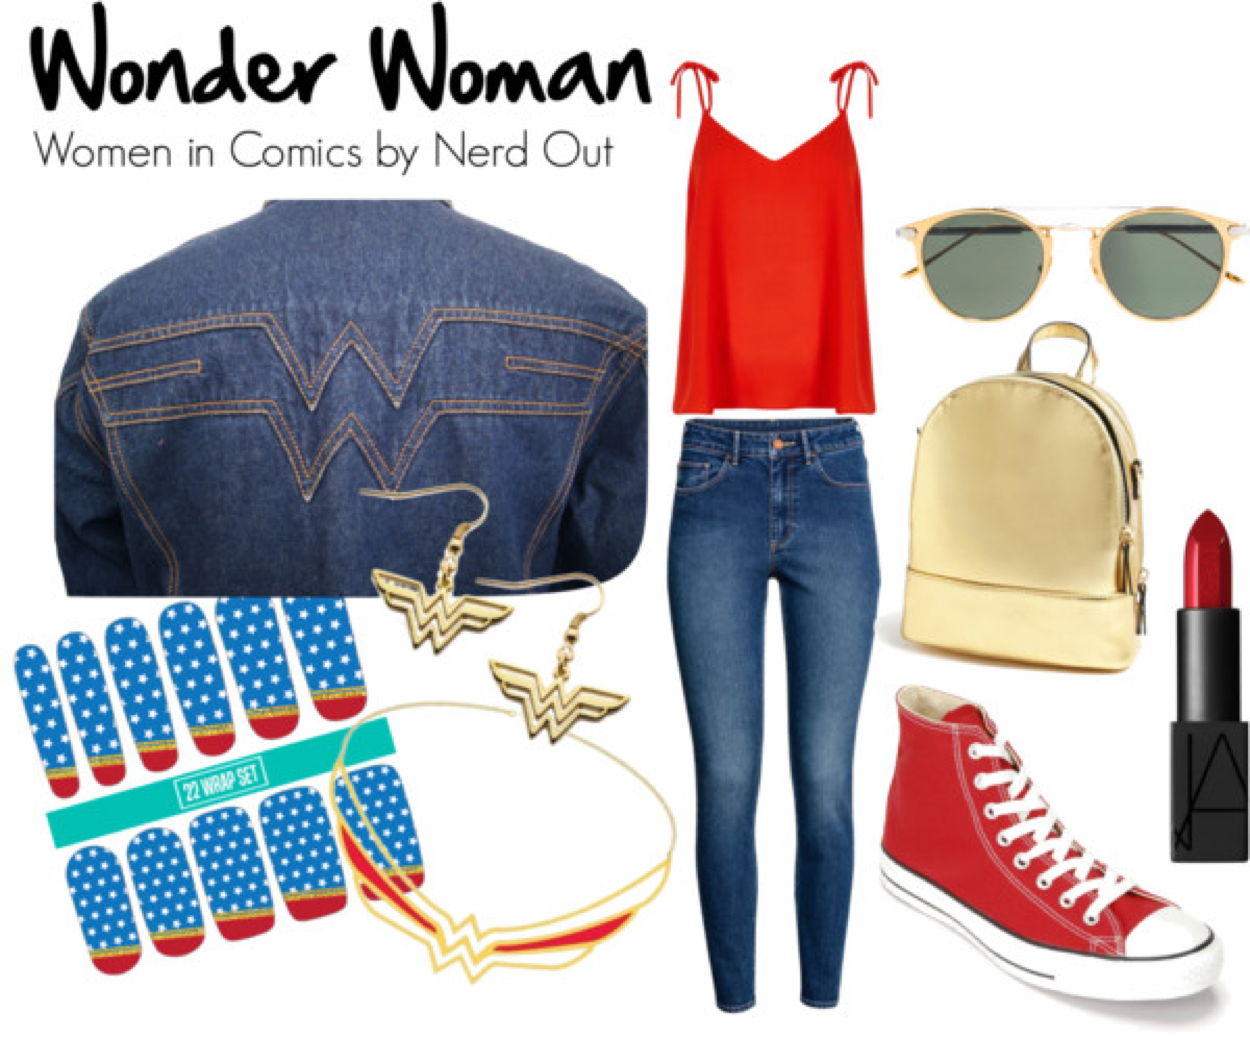 Wonder Woman  by  nerdout  featuring  cartier glasses      River Island tall shirt    /    High waisted jeans    /    Converse high top    /    Forever 21 gold backpack    /    Earrings    /    Necklace    /    Cartier glasses   /    Nars cosmetic    /    Nail care